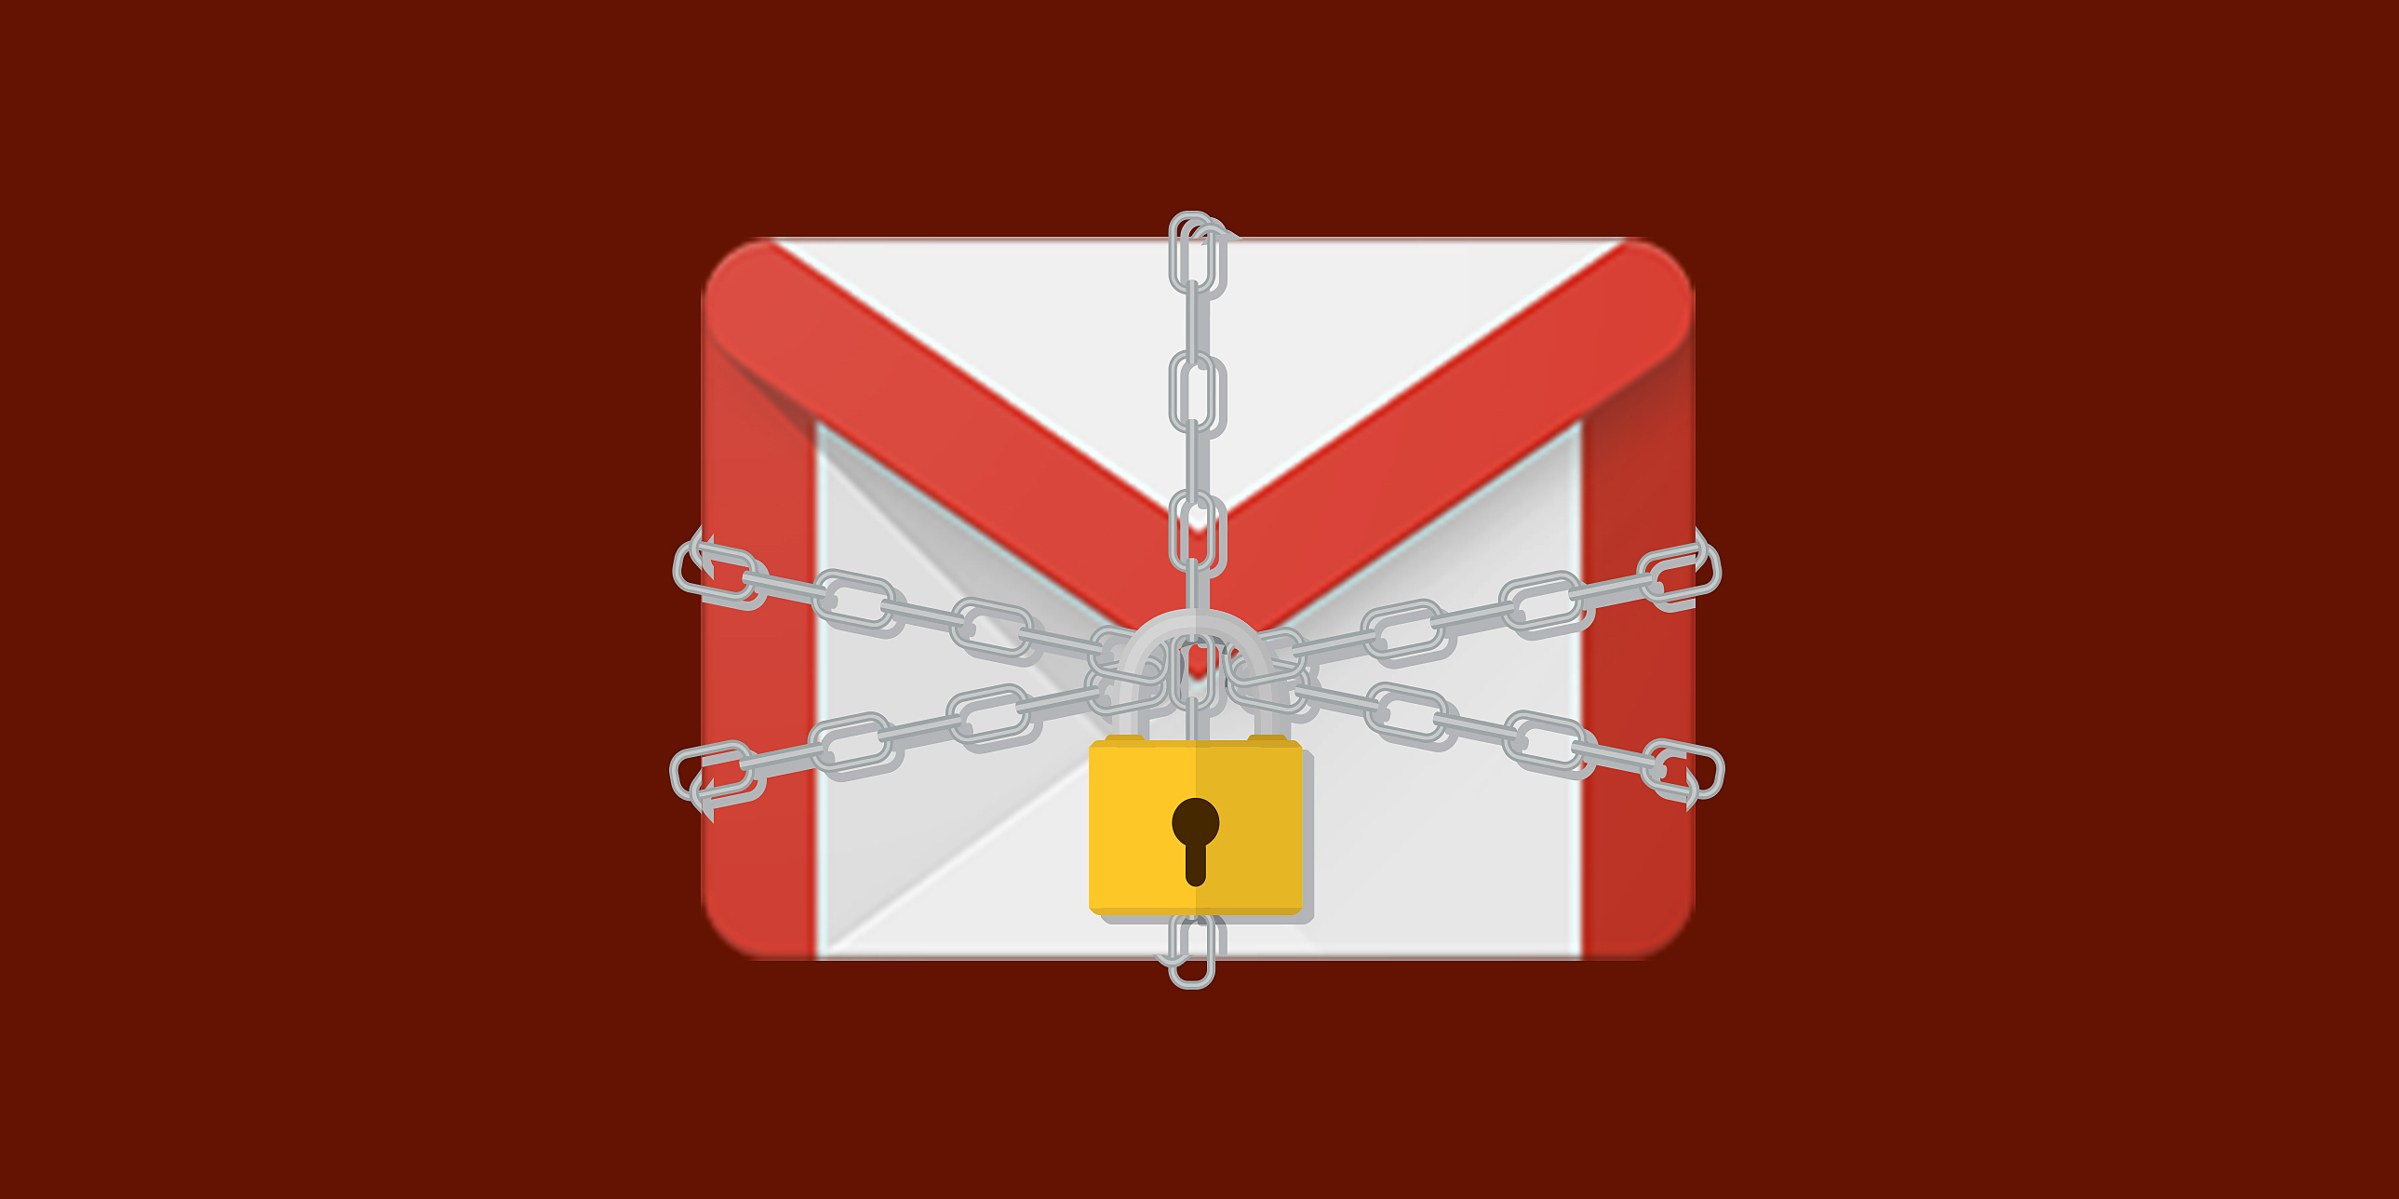 Google to revoke GMail access from non-secured apps starting Feb